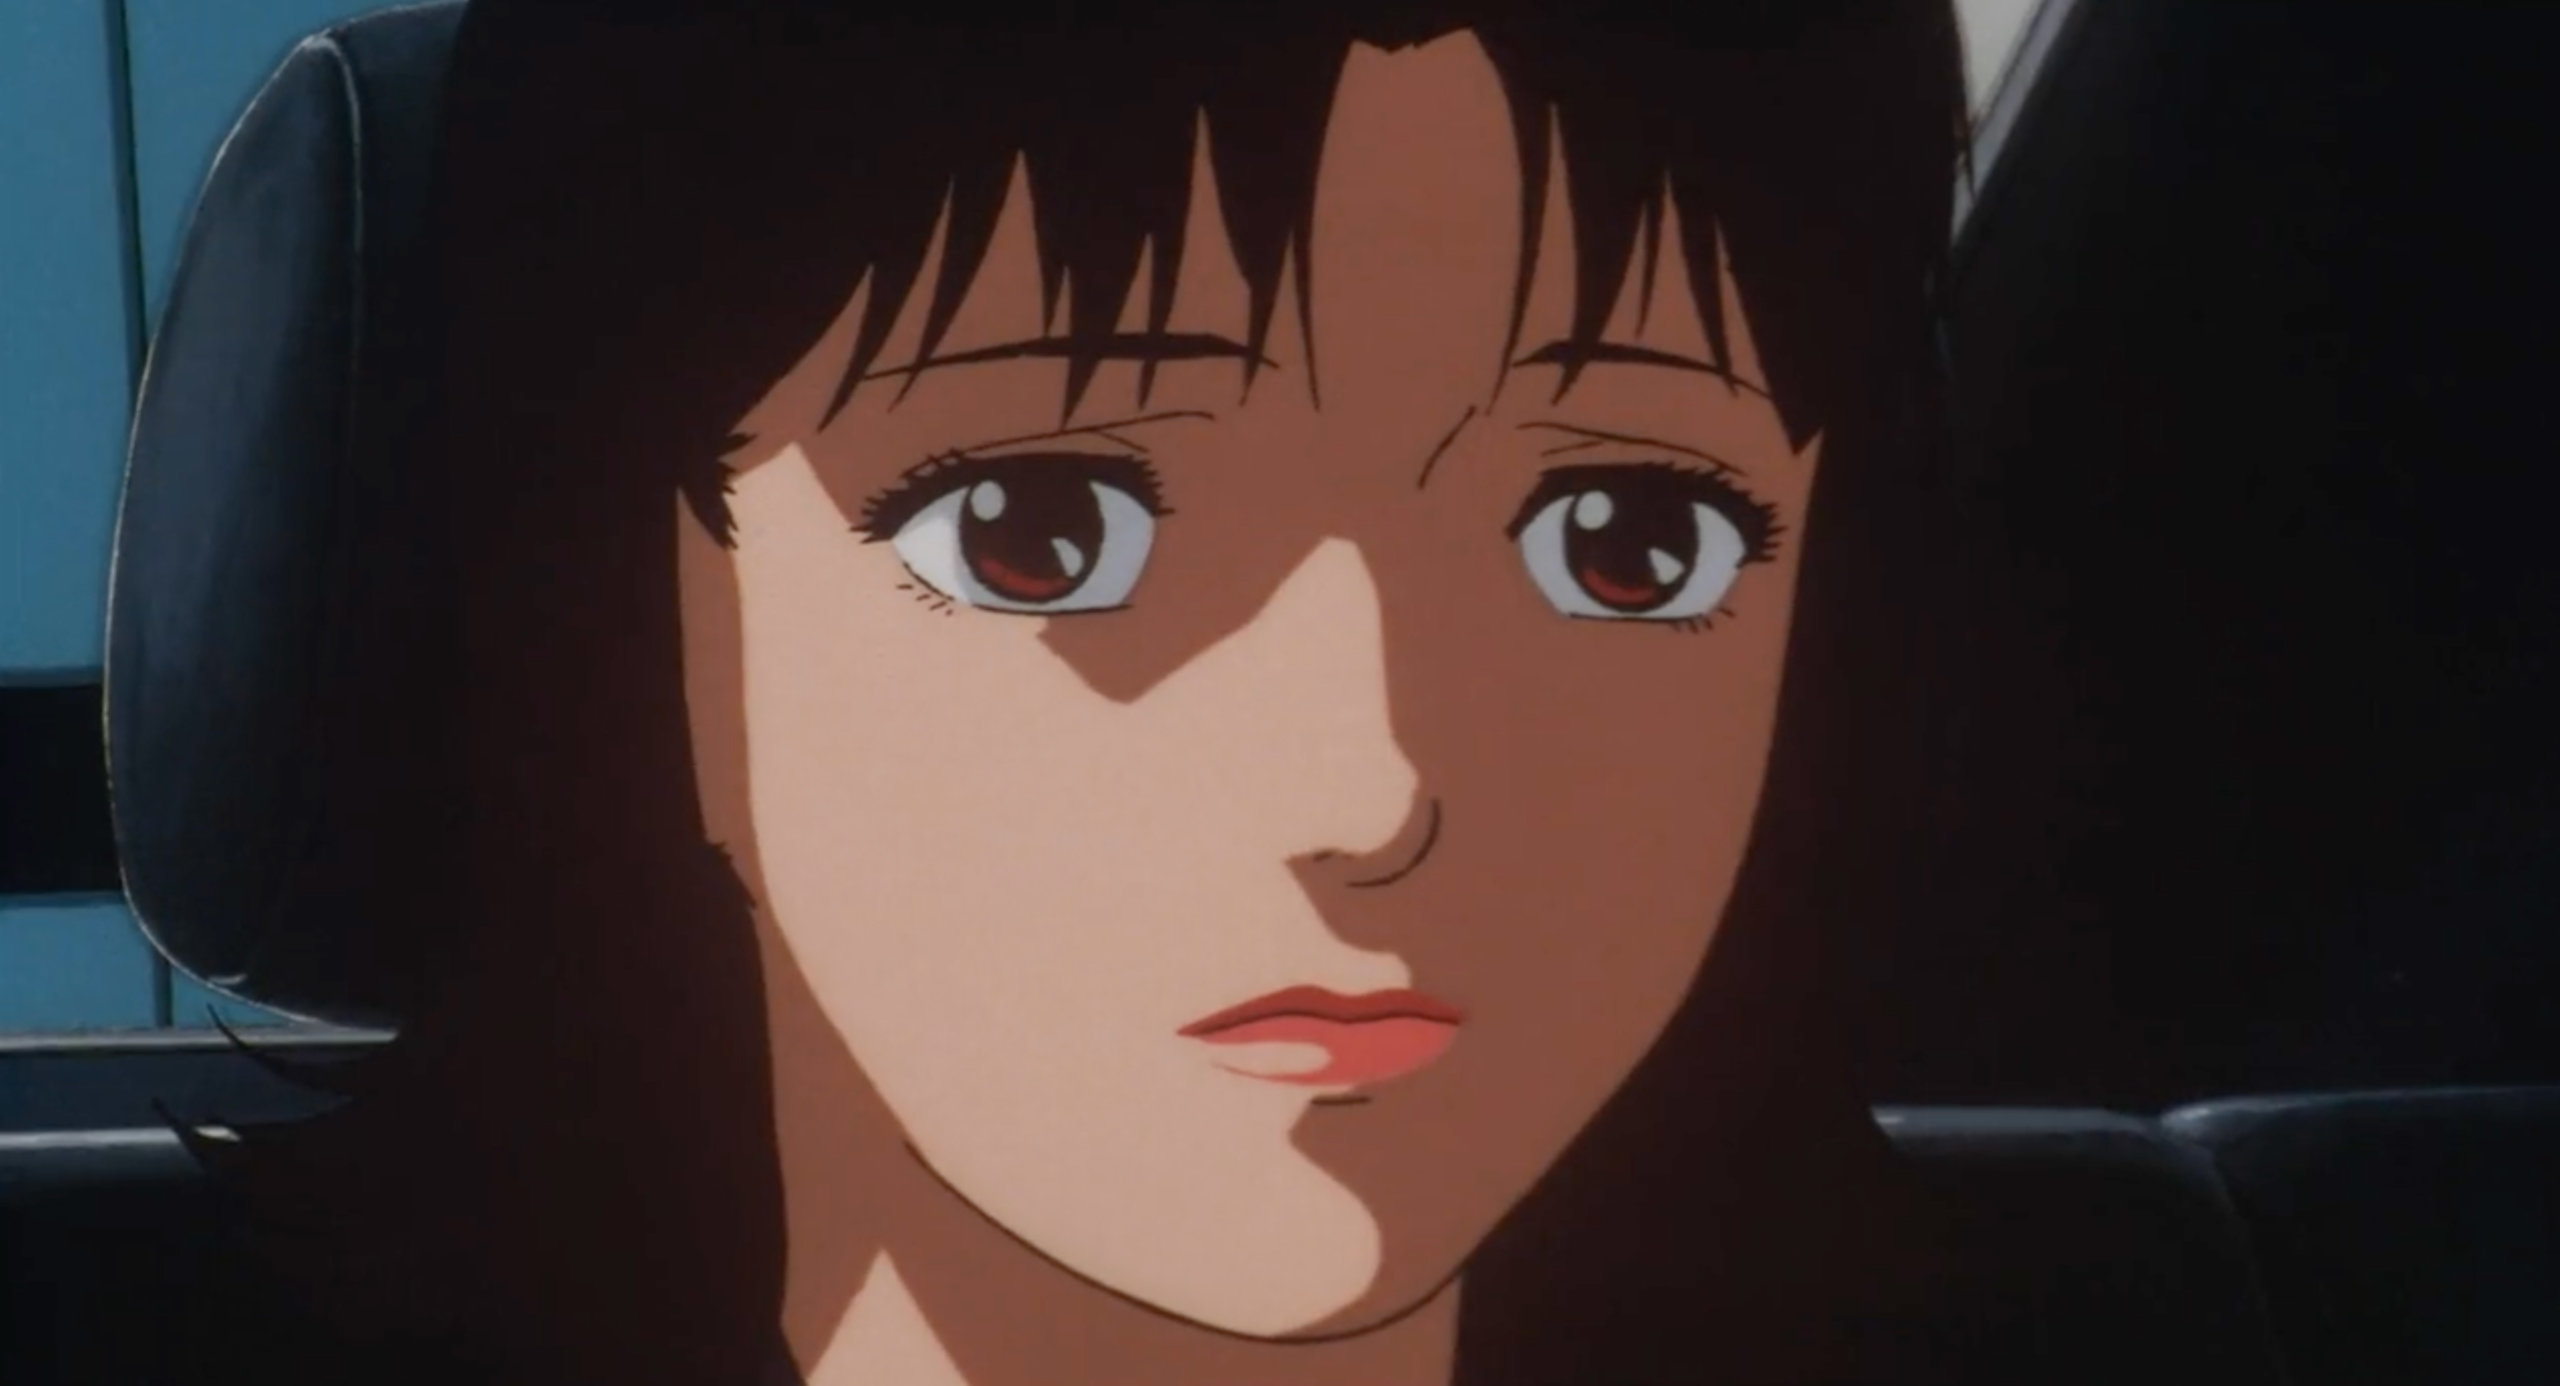 Mima sits in the back of a car looking sad in Perfect Blue